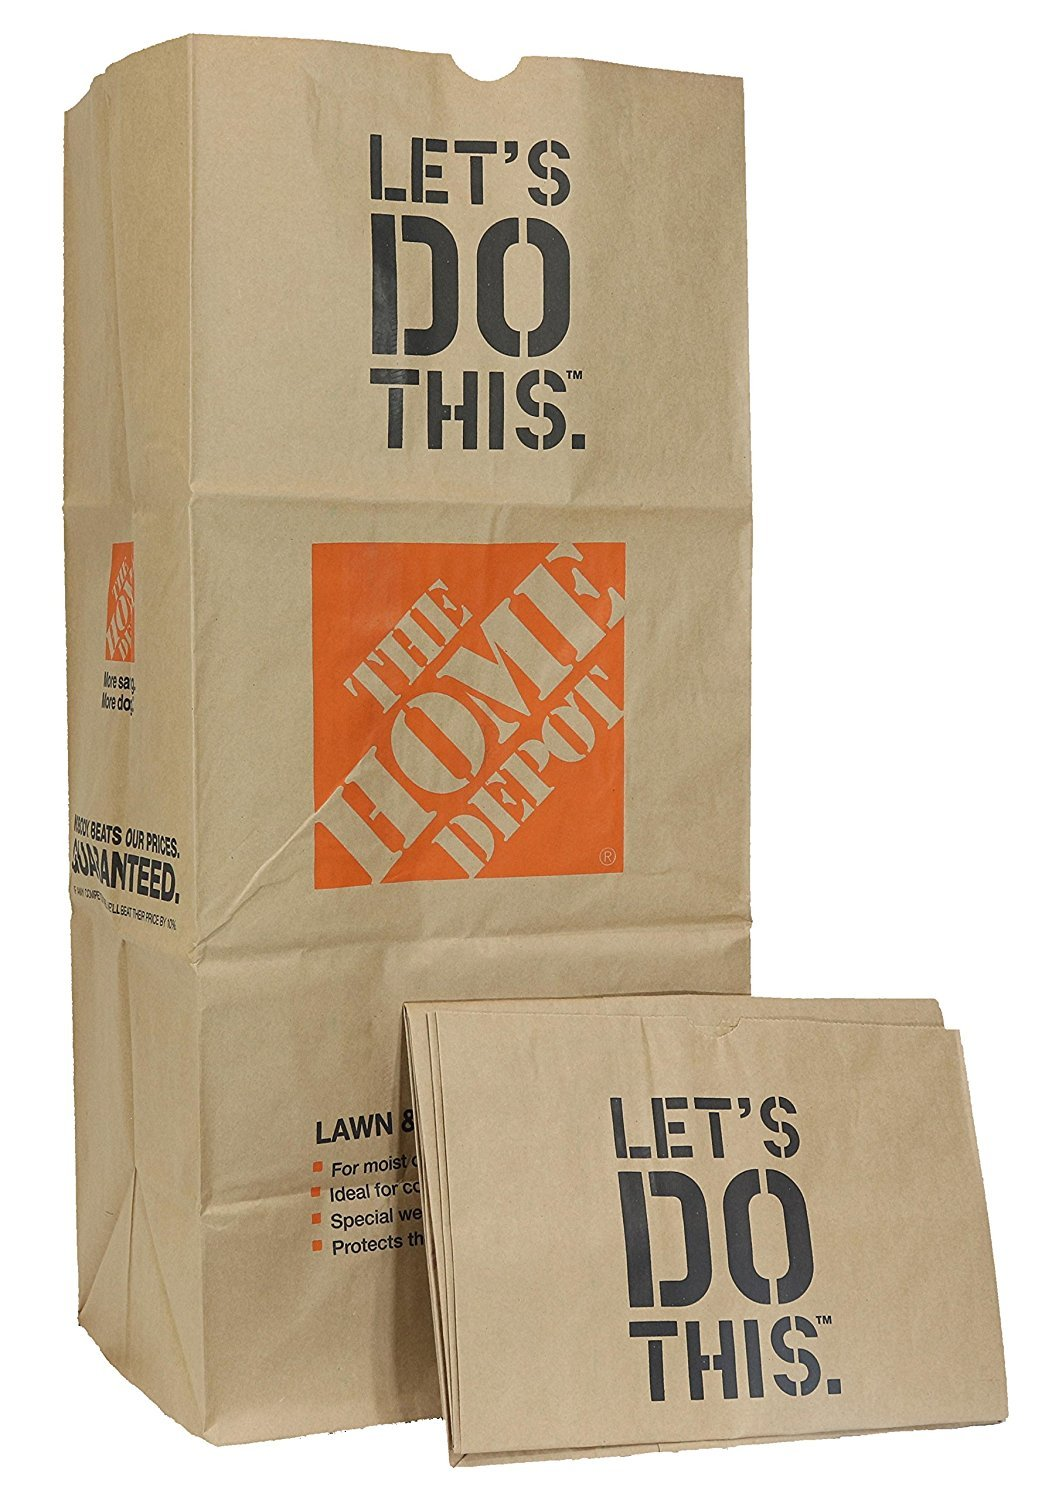 The Home Depot 49022-10PK Heavy Duty Brown Paper Lawn and Refuse Bags for Home and Garden, 30 gal (Pack of 10) by The home depot